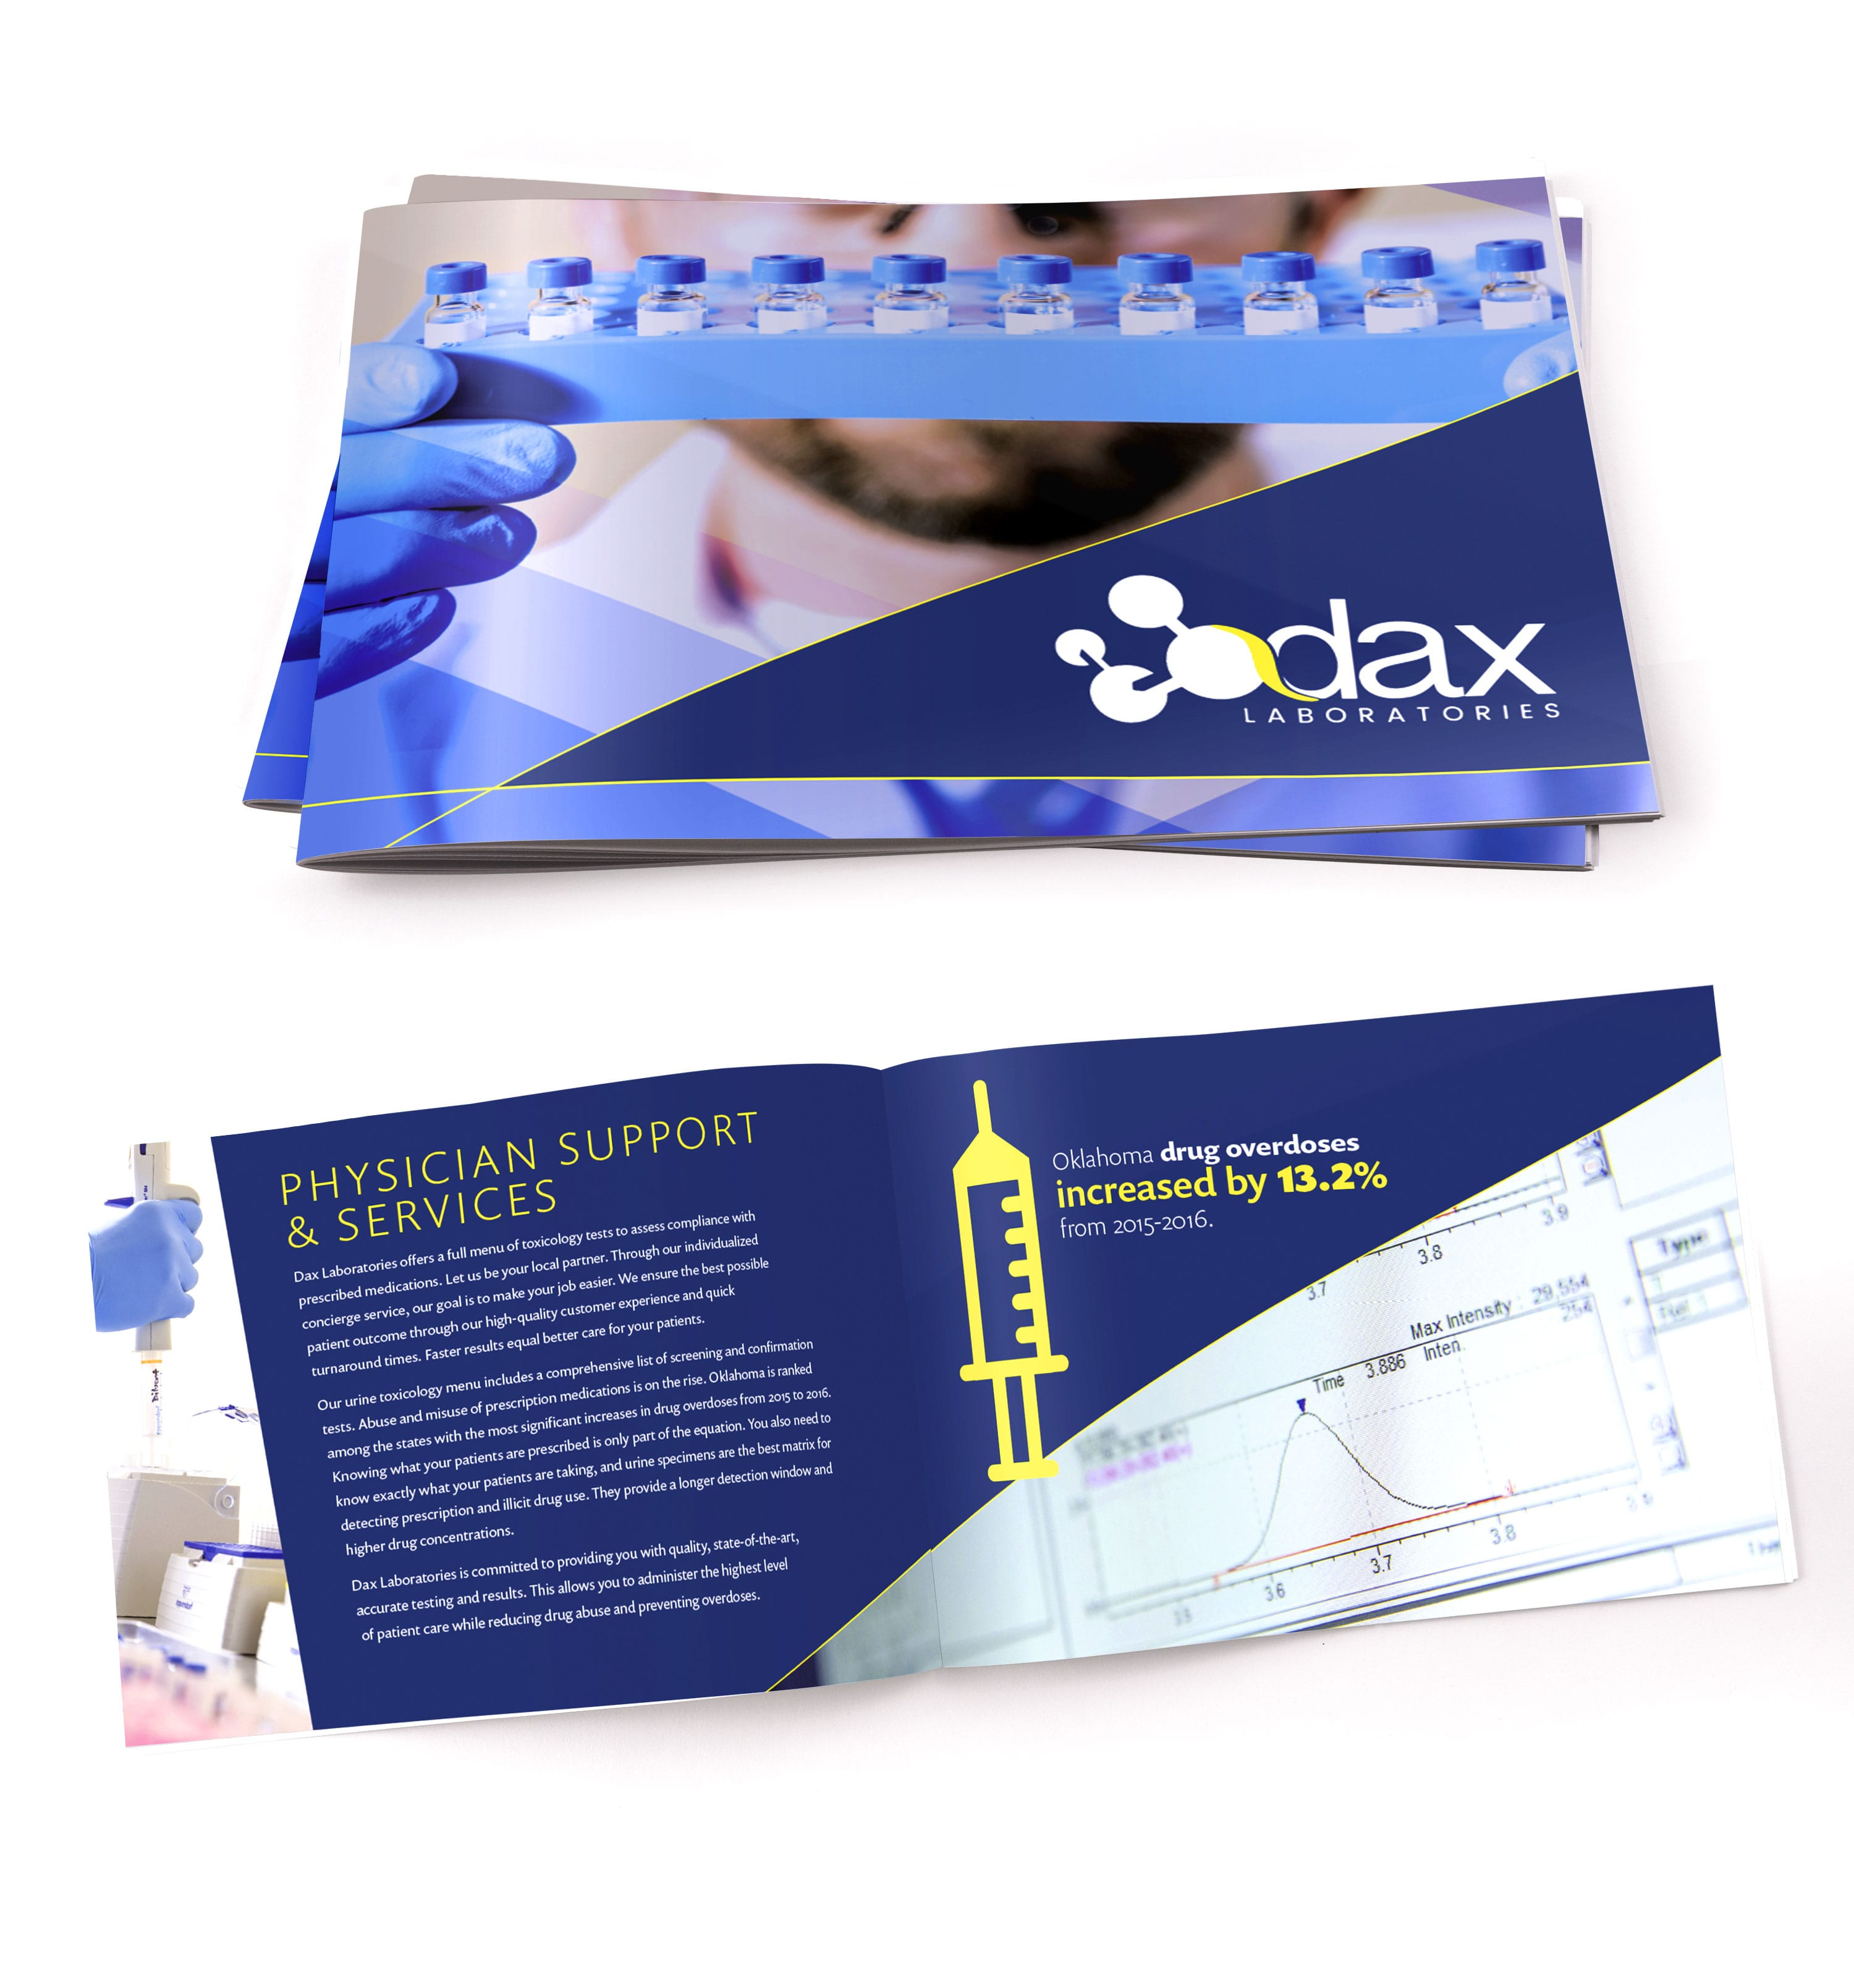 Dax Laboratories | Brochure Design by Liquid Media